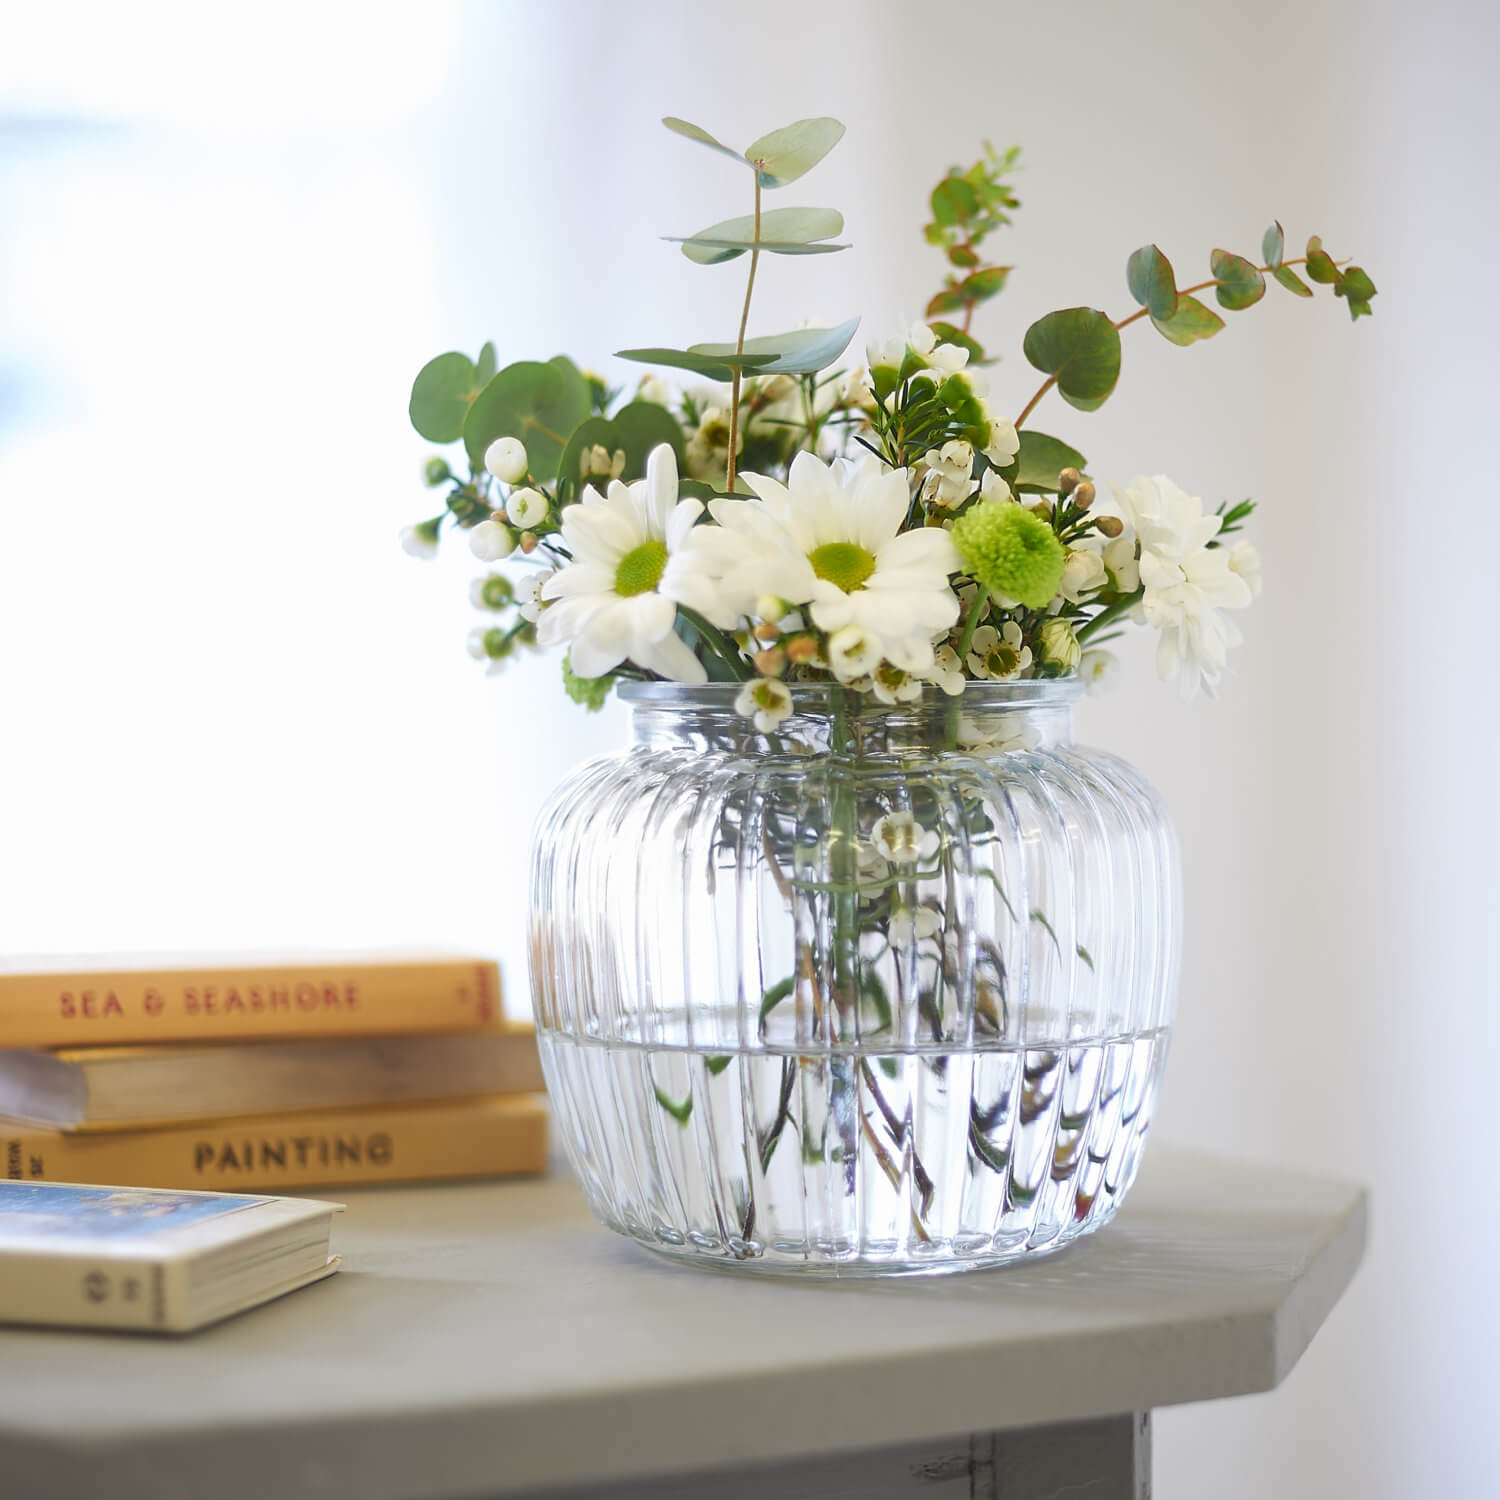 Product photography with Observer books and window behind